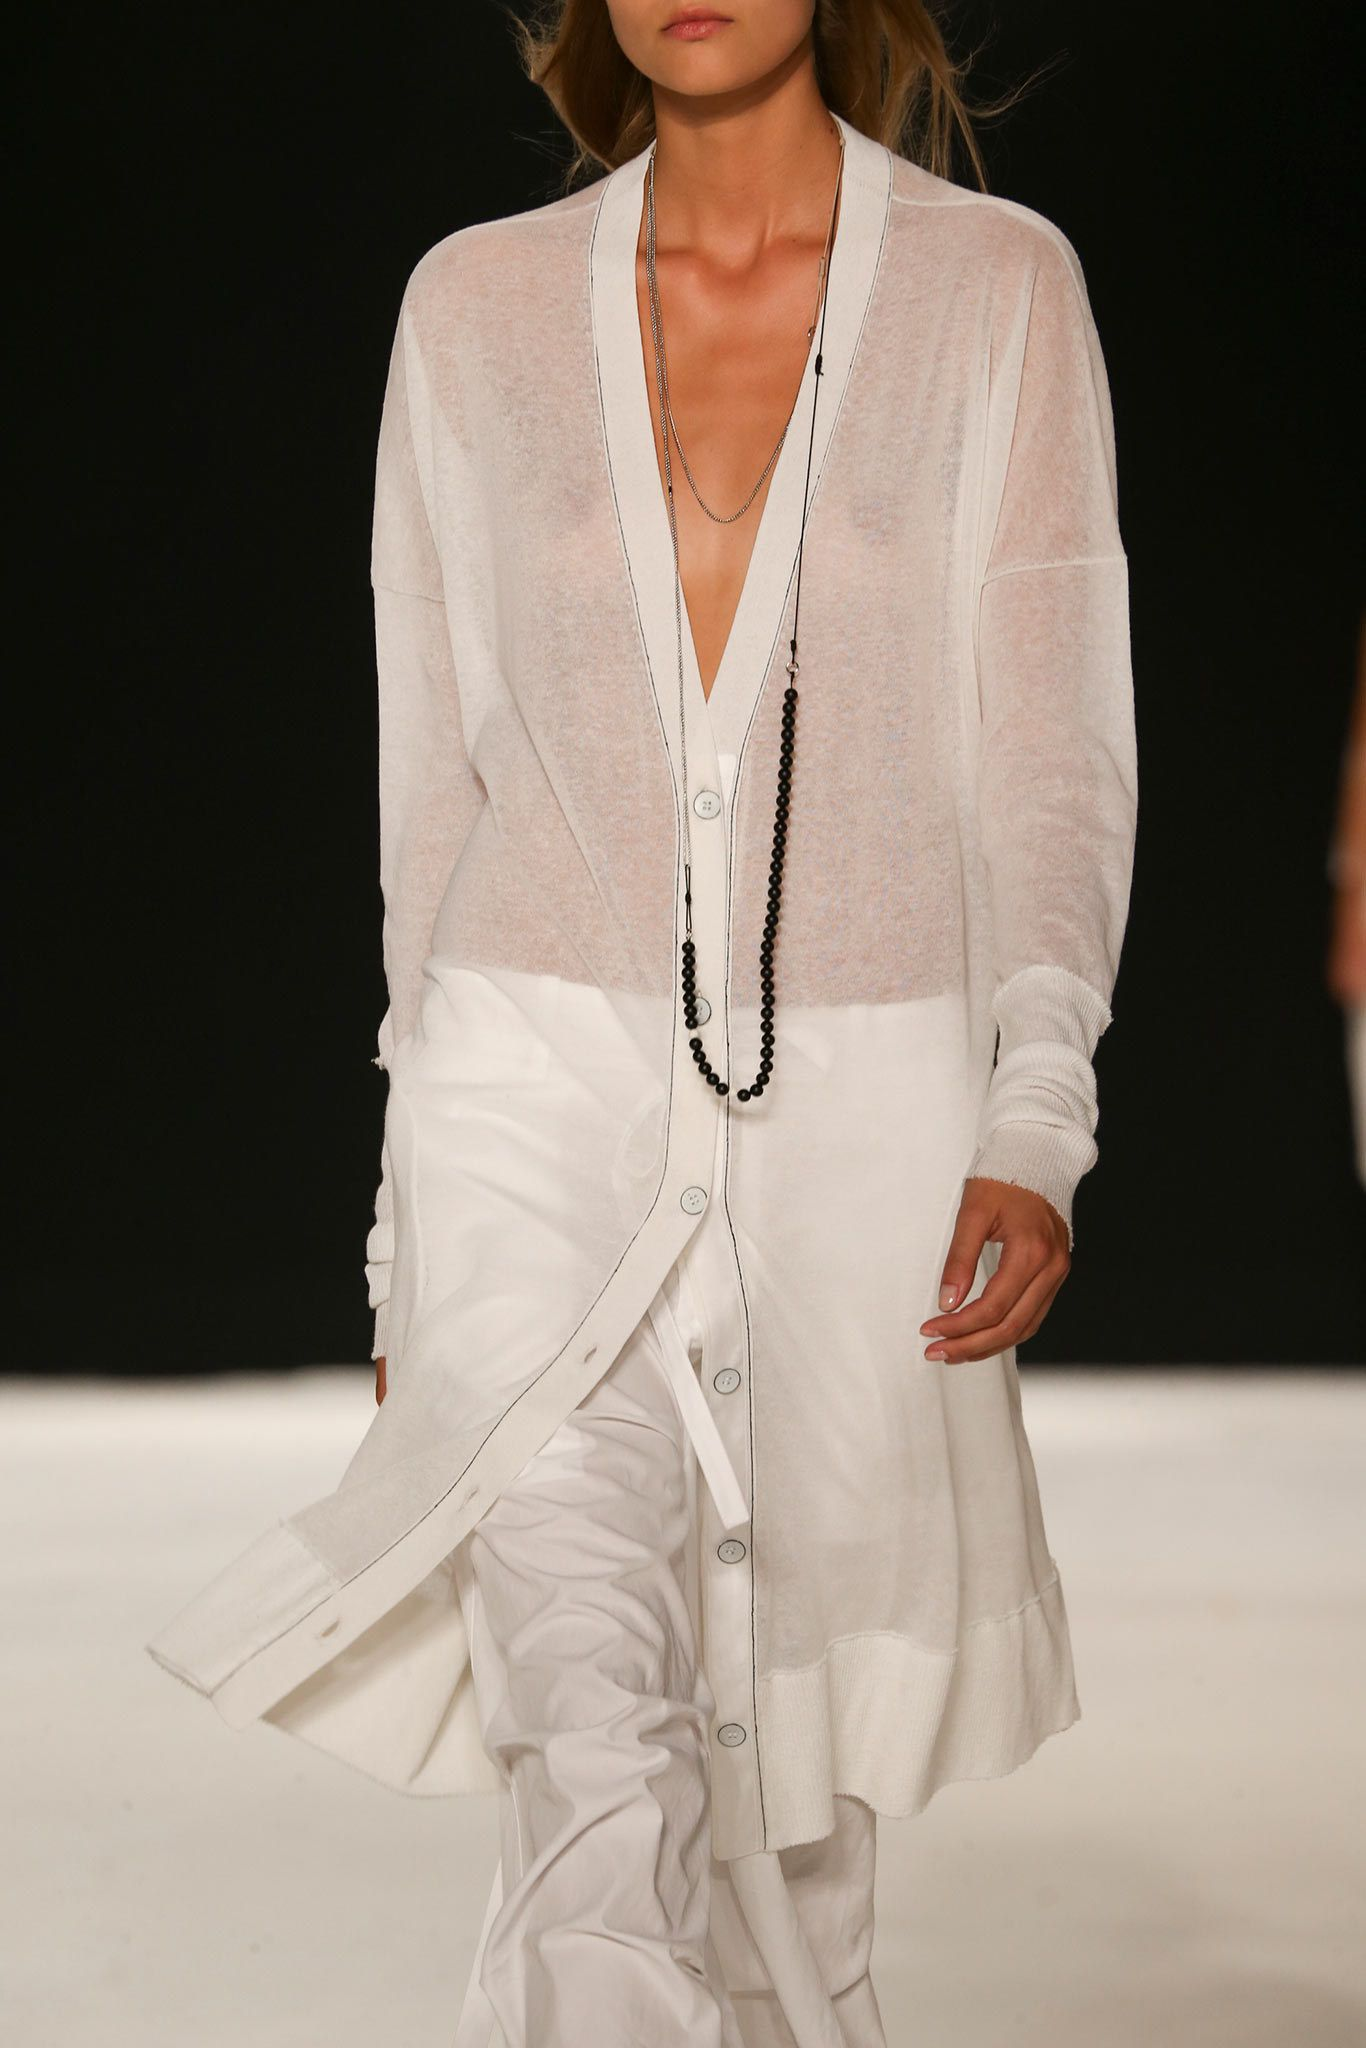 See detail photos for Rag & Bone Spring 2015 Ready-to-Wear collection.